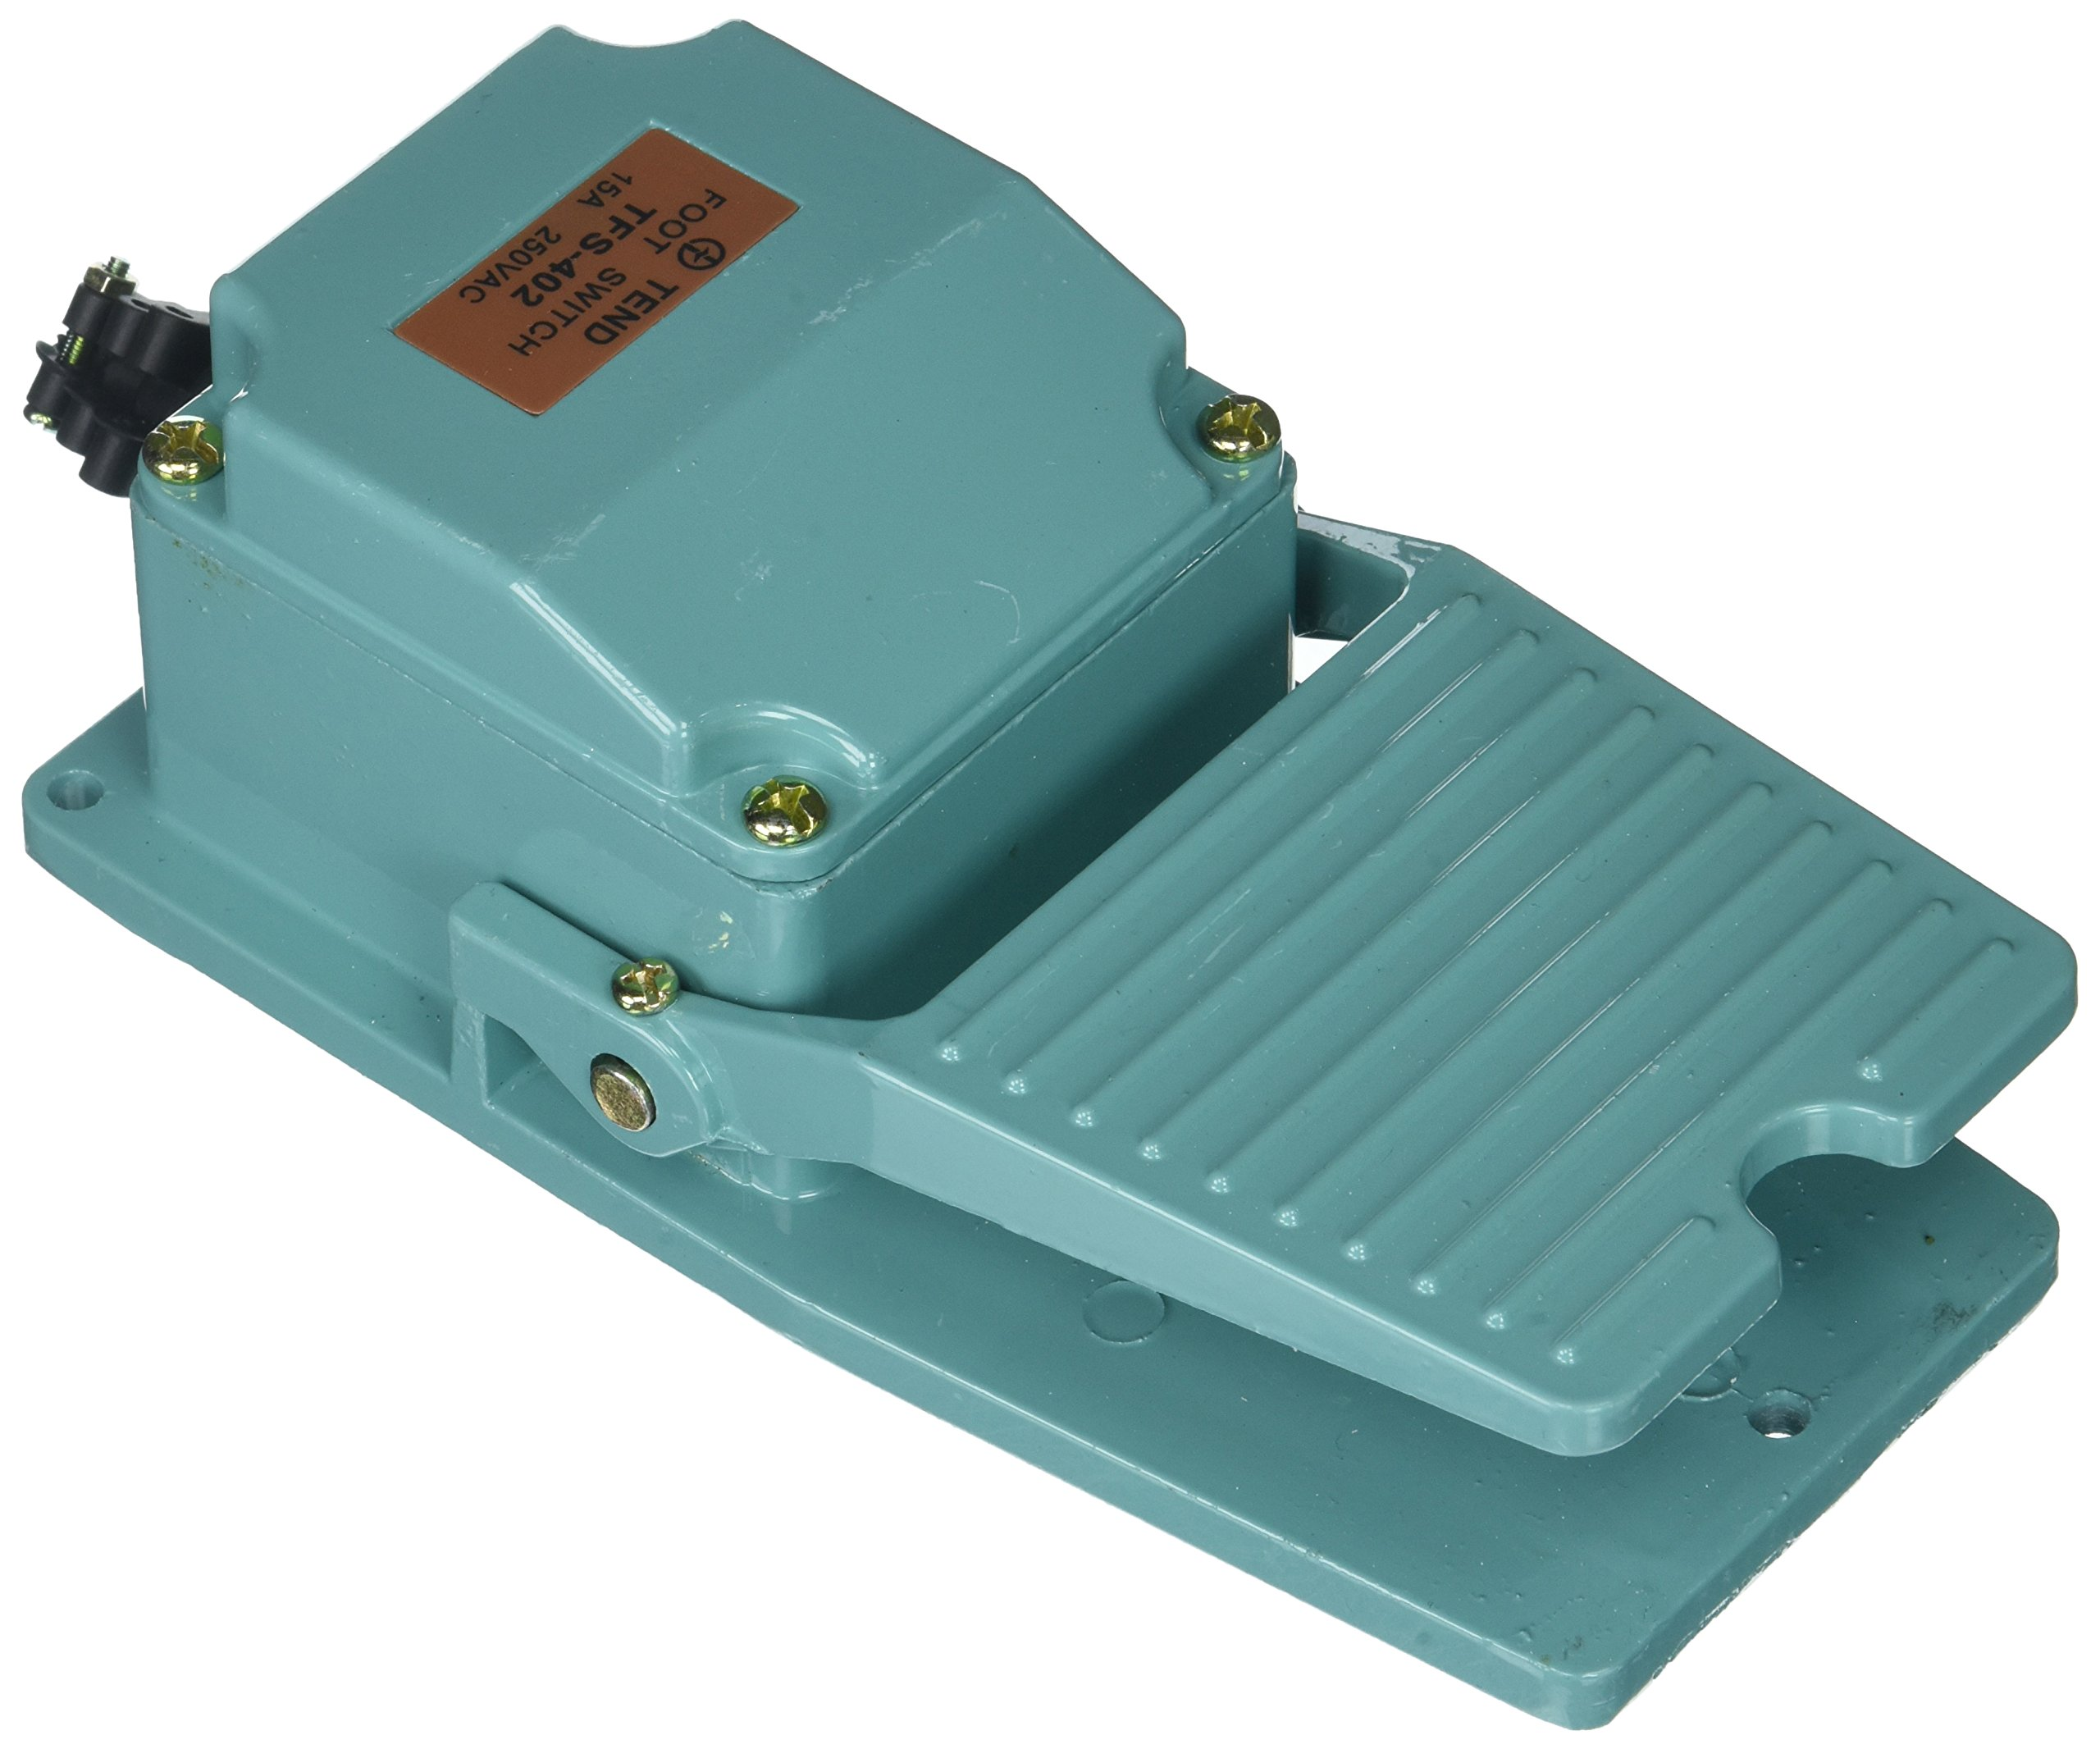 Uxcell AC 250V 15 Amp Antislip Momentary Industrial Foot Pedal Switch